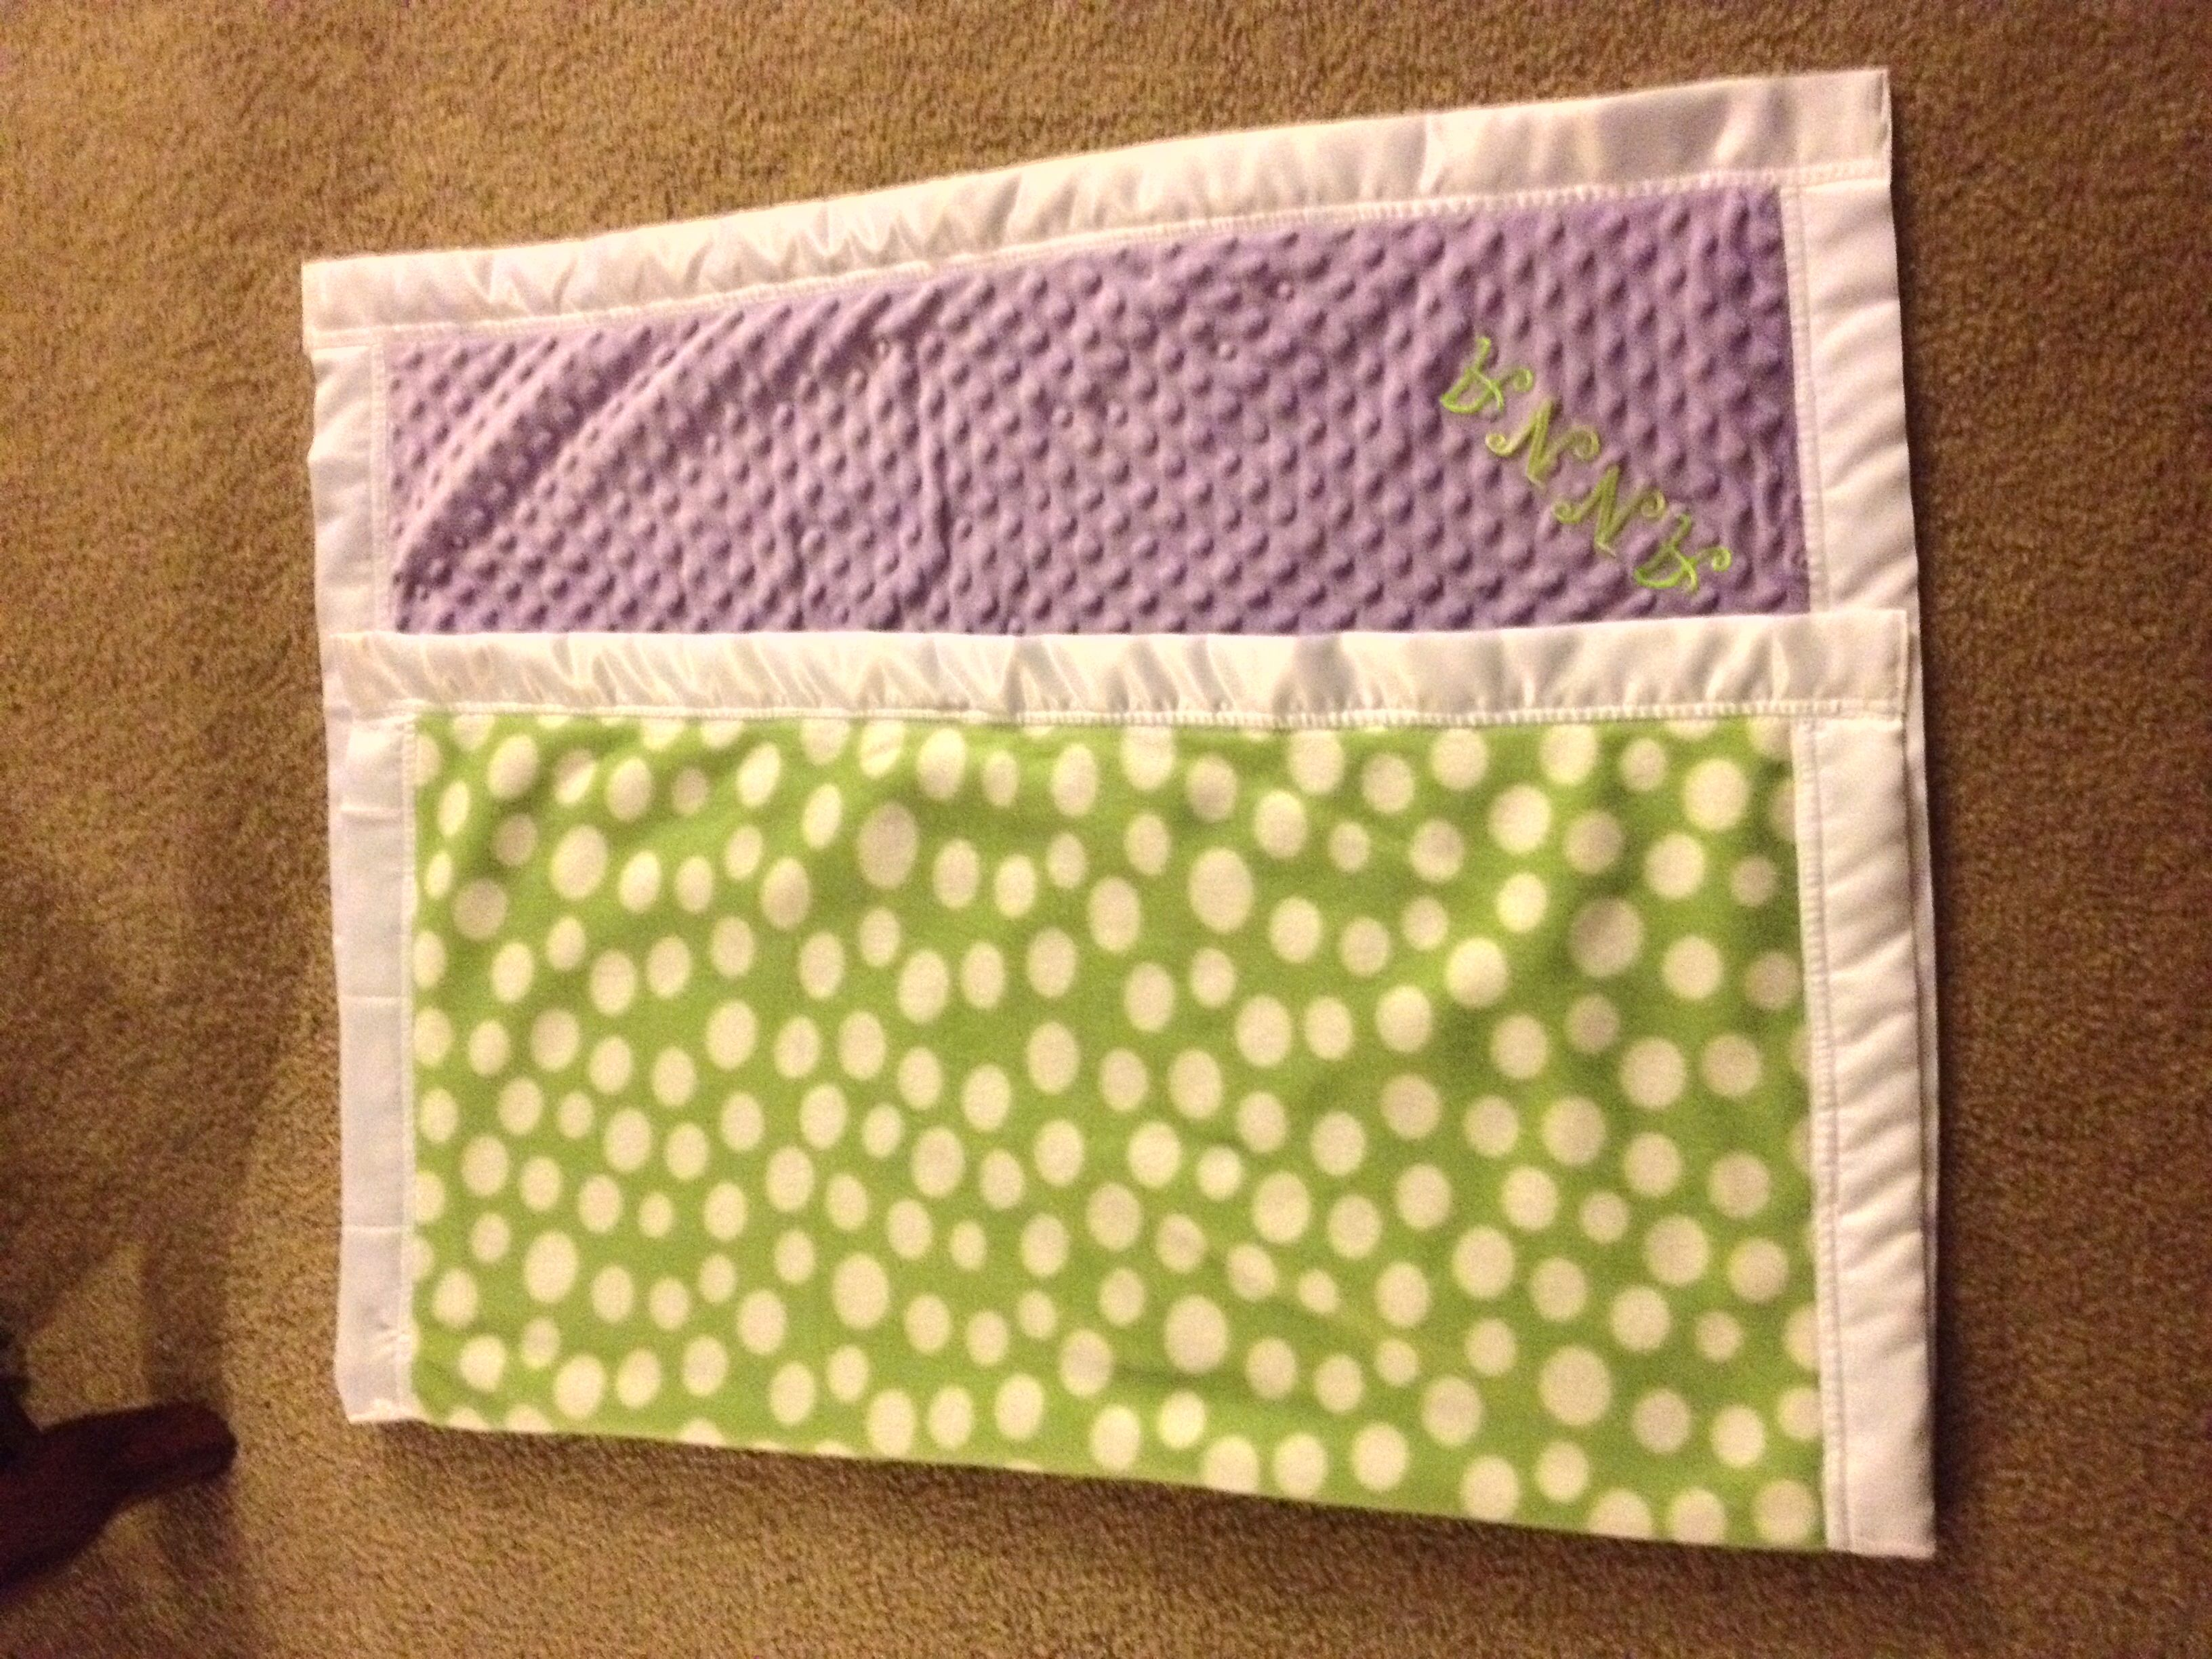 A blanket i made for my newborn niece pieces of material of your